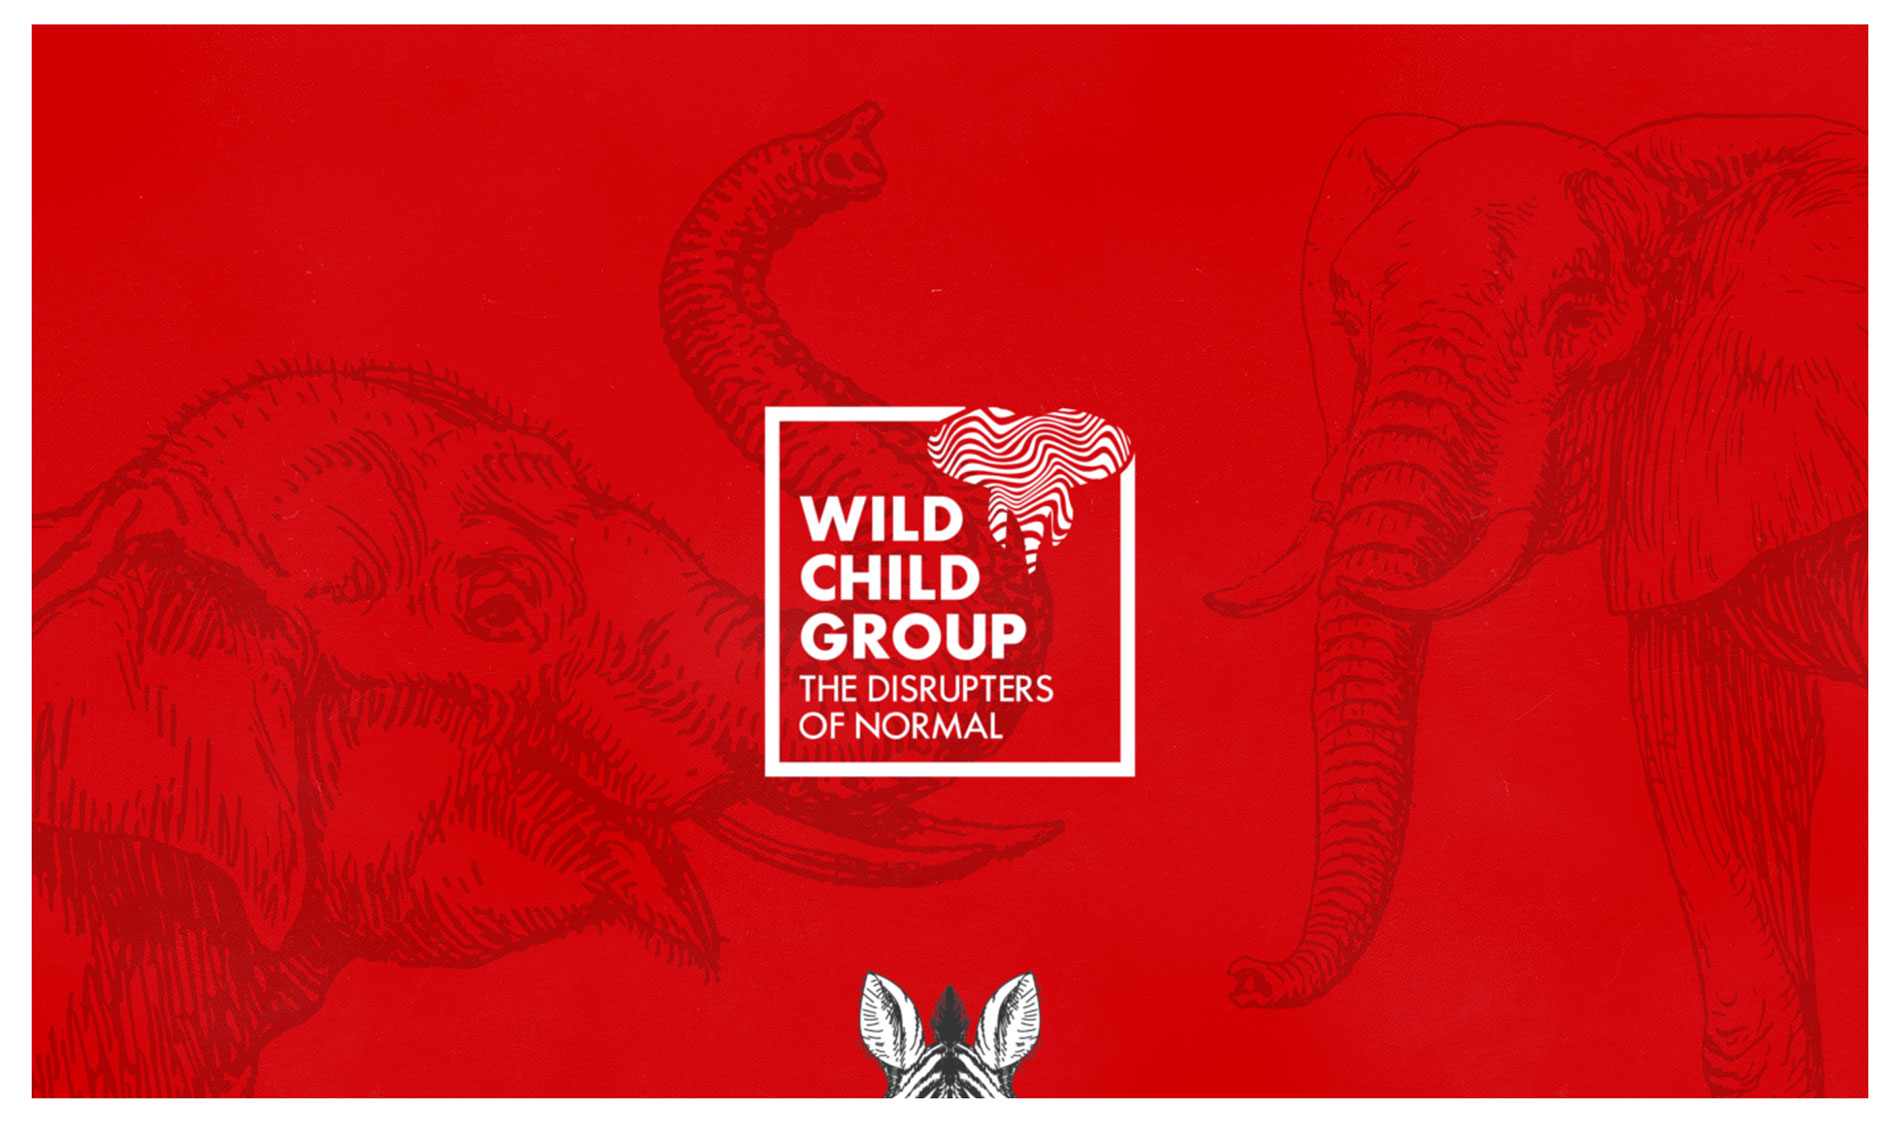 Wild Child Group website screenshot